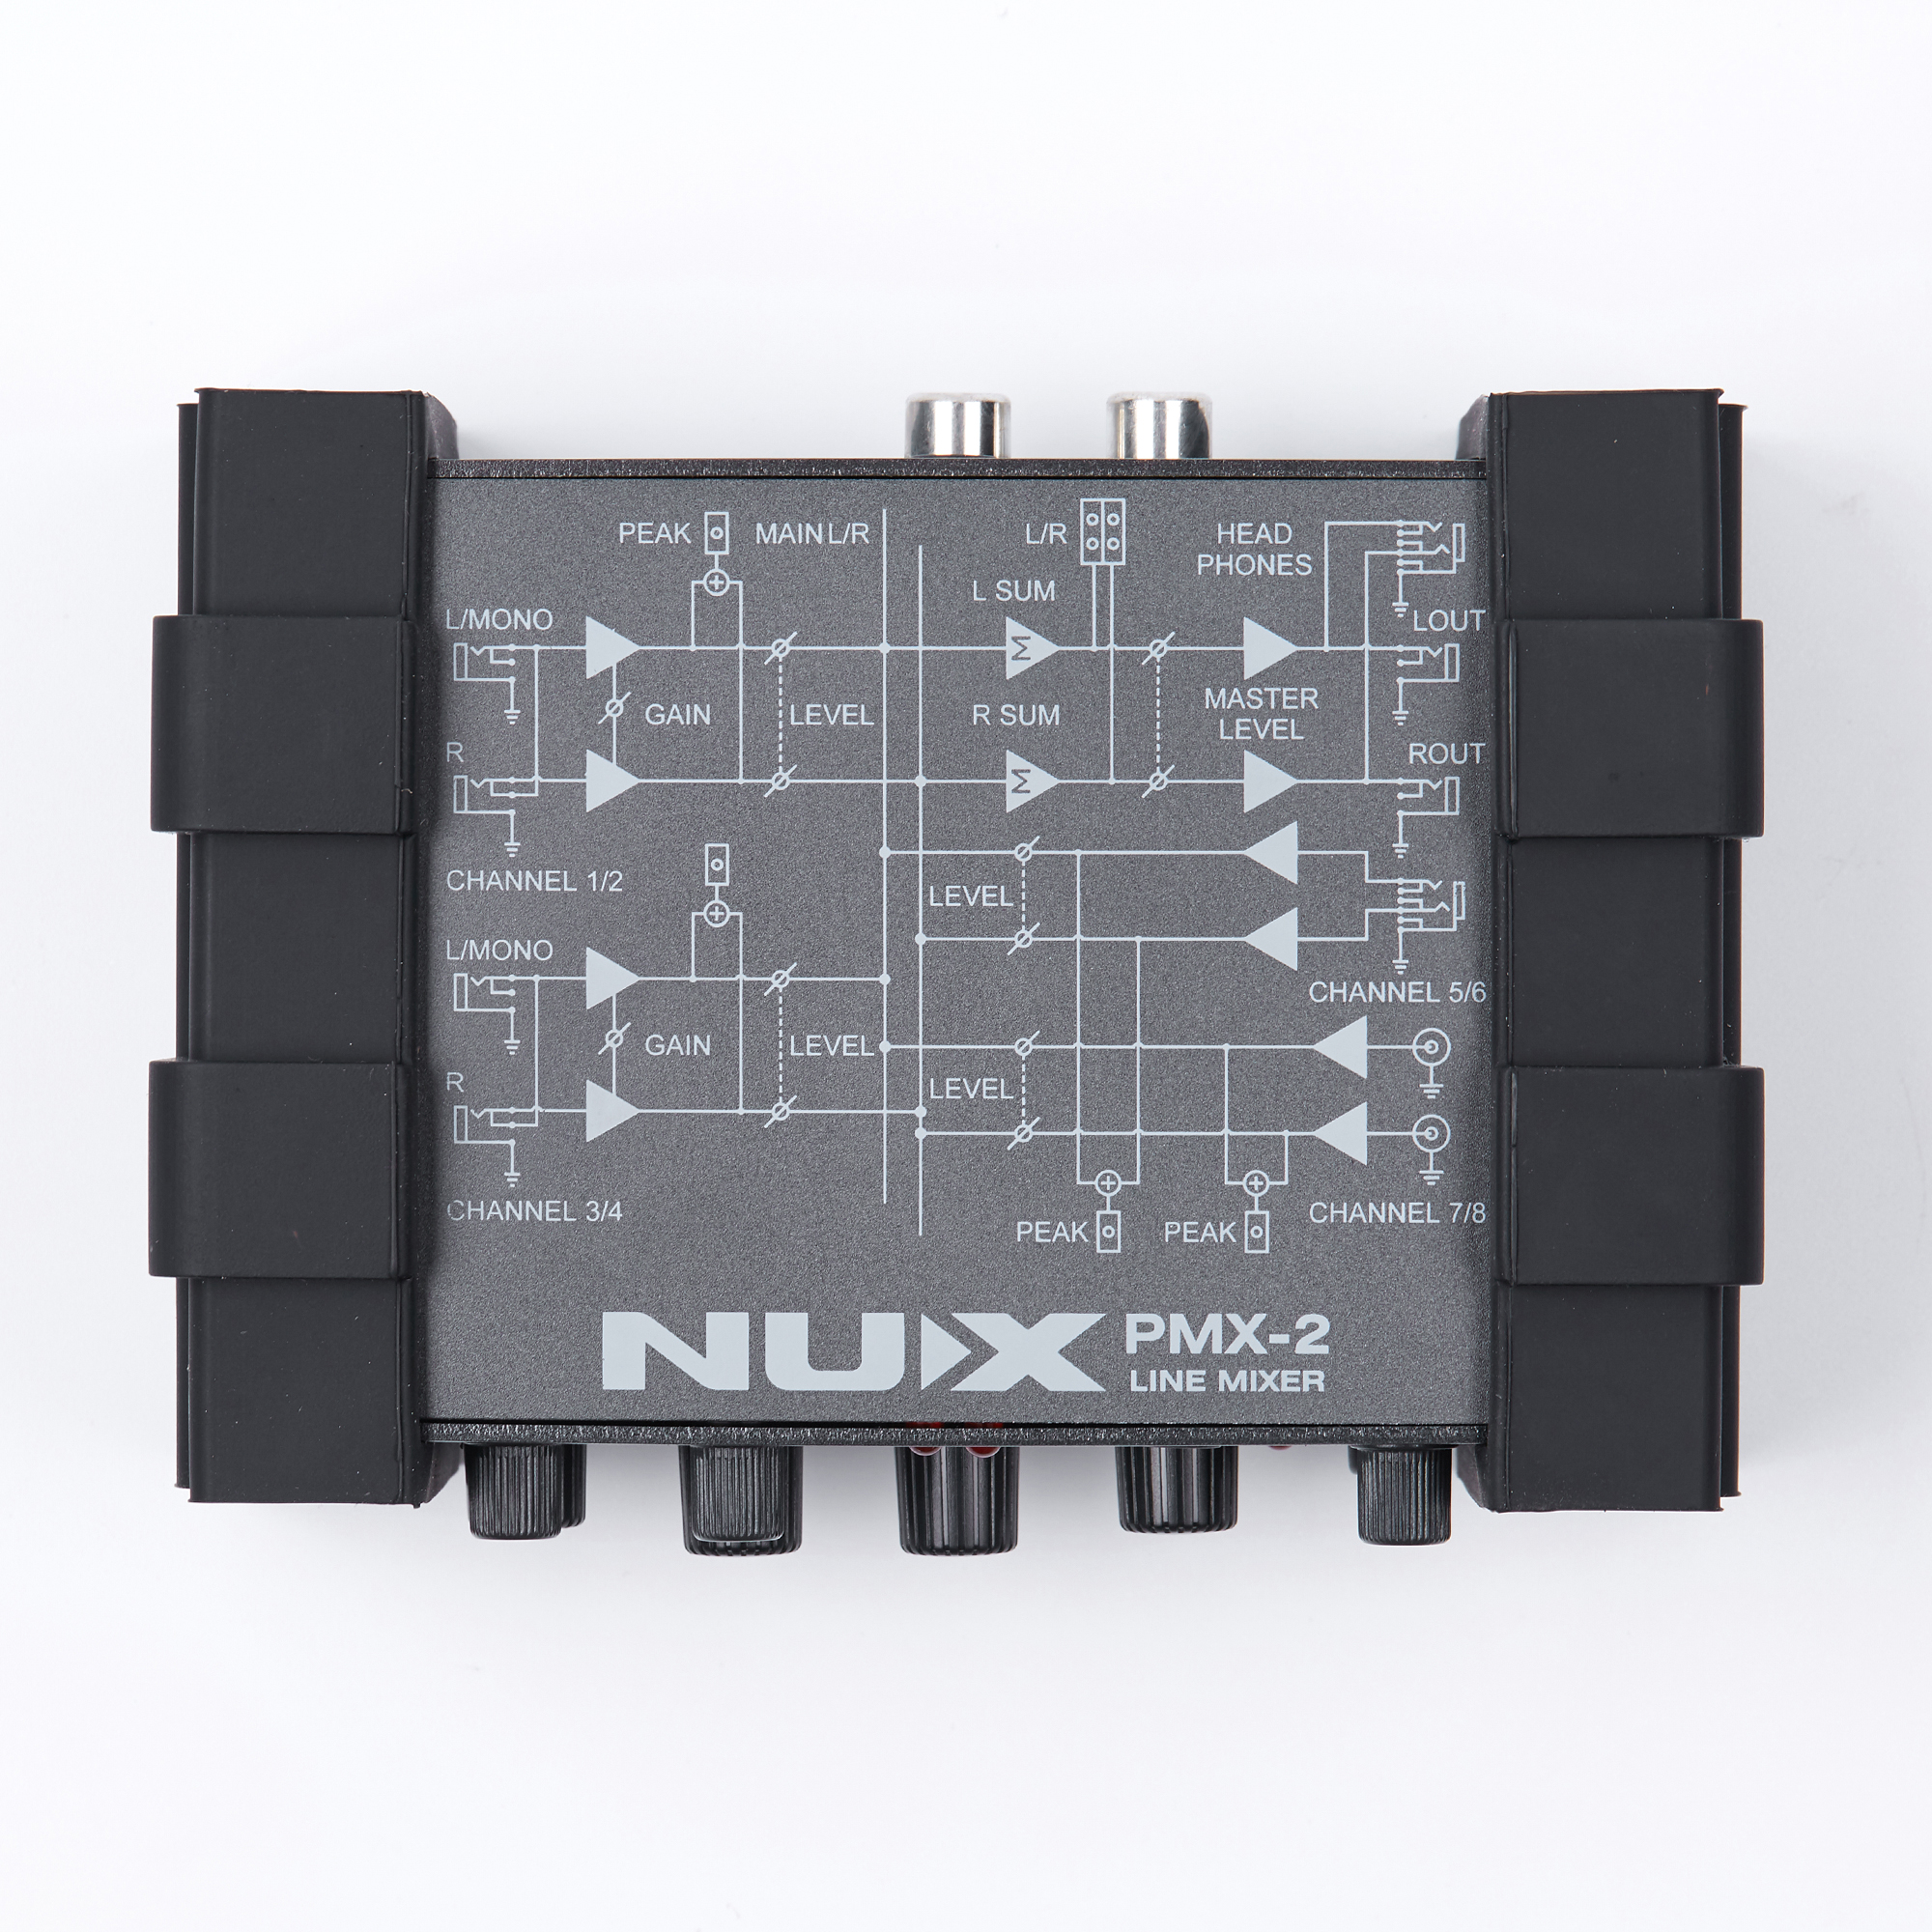 Gain Control 8 Inputs and 2 Outputs NUX PMX-2 Multi-Channel Mini Mixer 30 Musical Instruments Accessories for Guitar Bass Player ольга громыко ведьмины байки цифровая версия